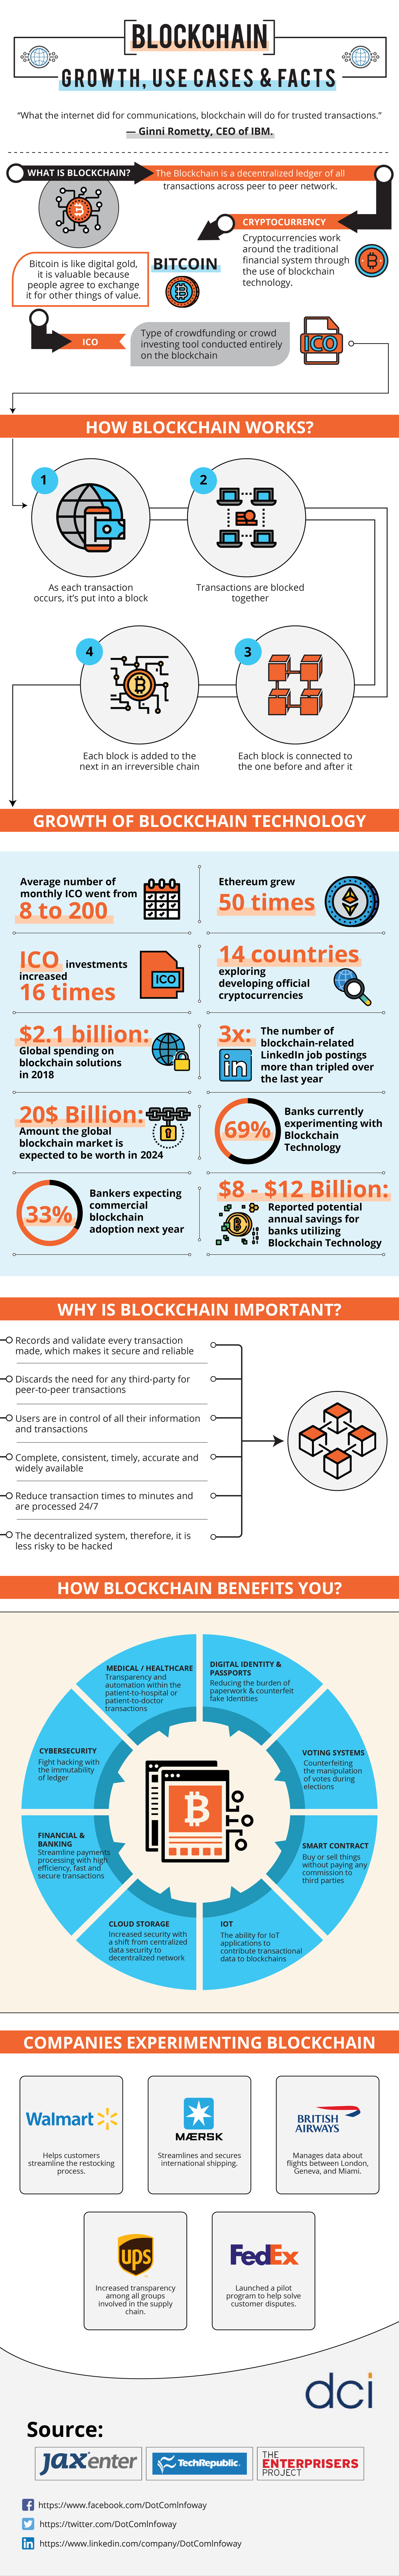 Blockchain Infographic Growth Use Cases Facts Dzone